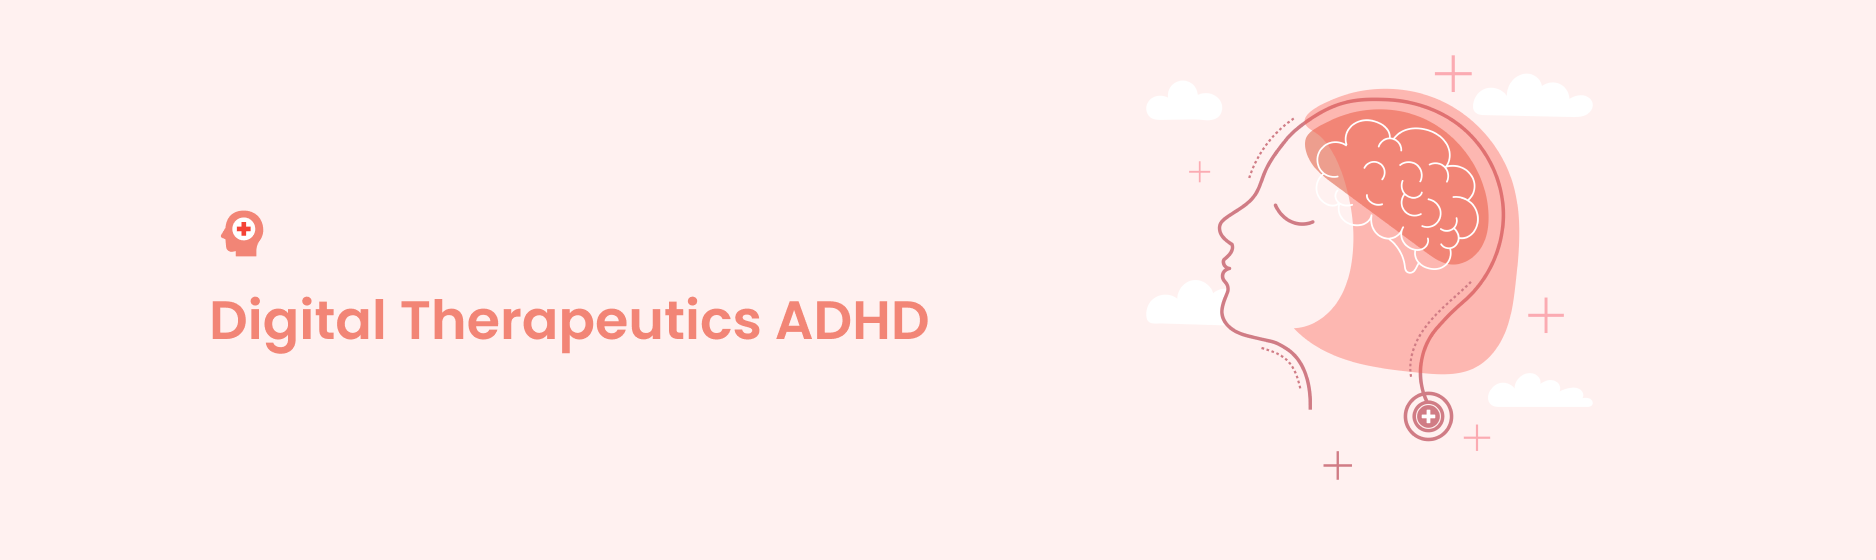 The Effectiveness of Digital Therapeutics for ADHD